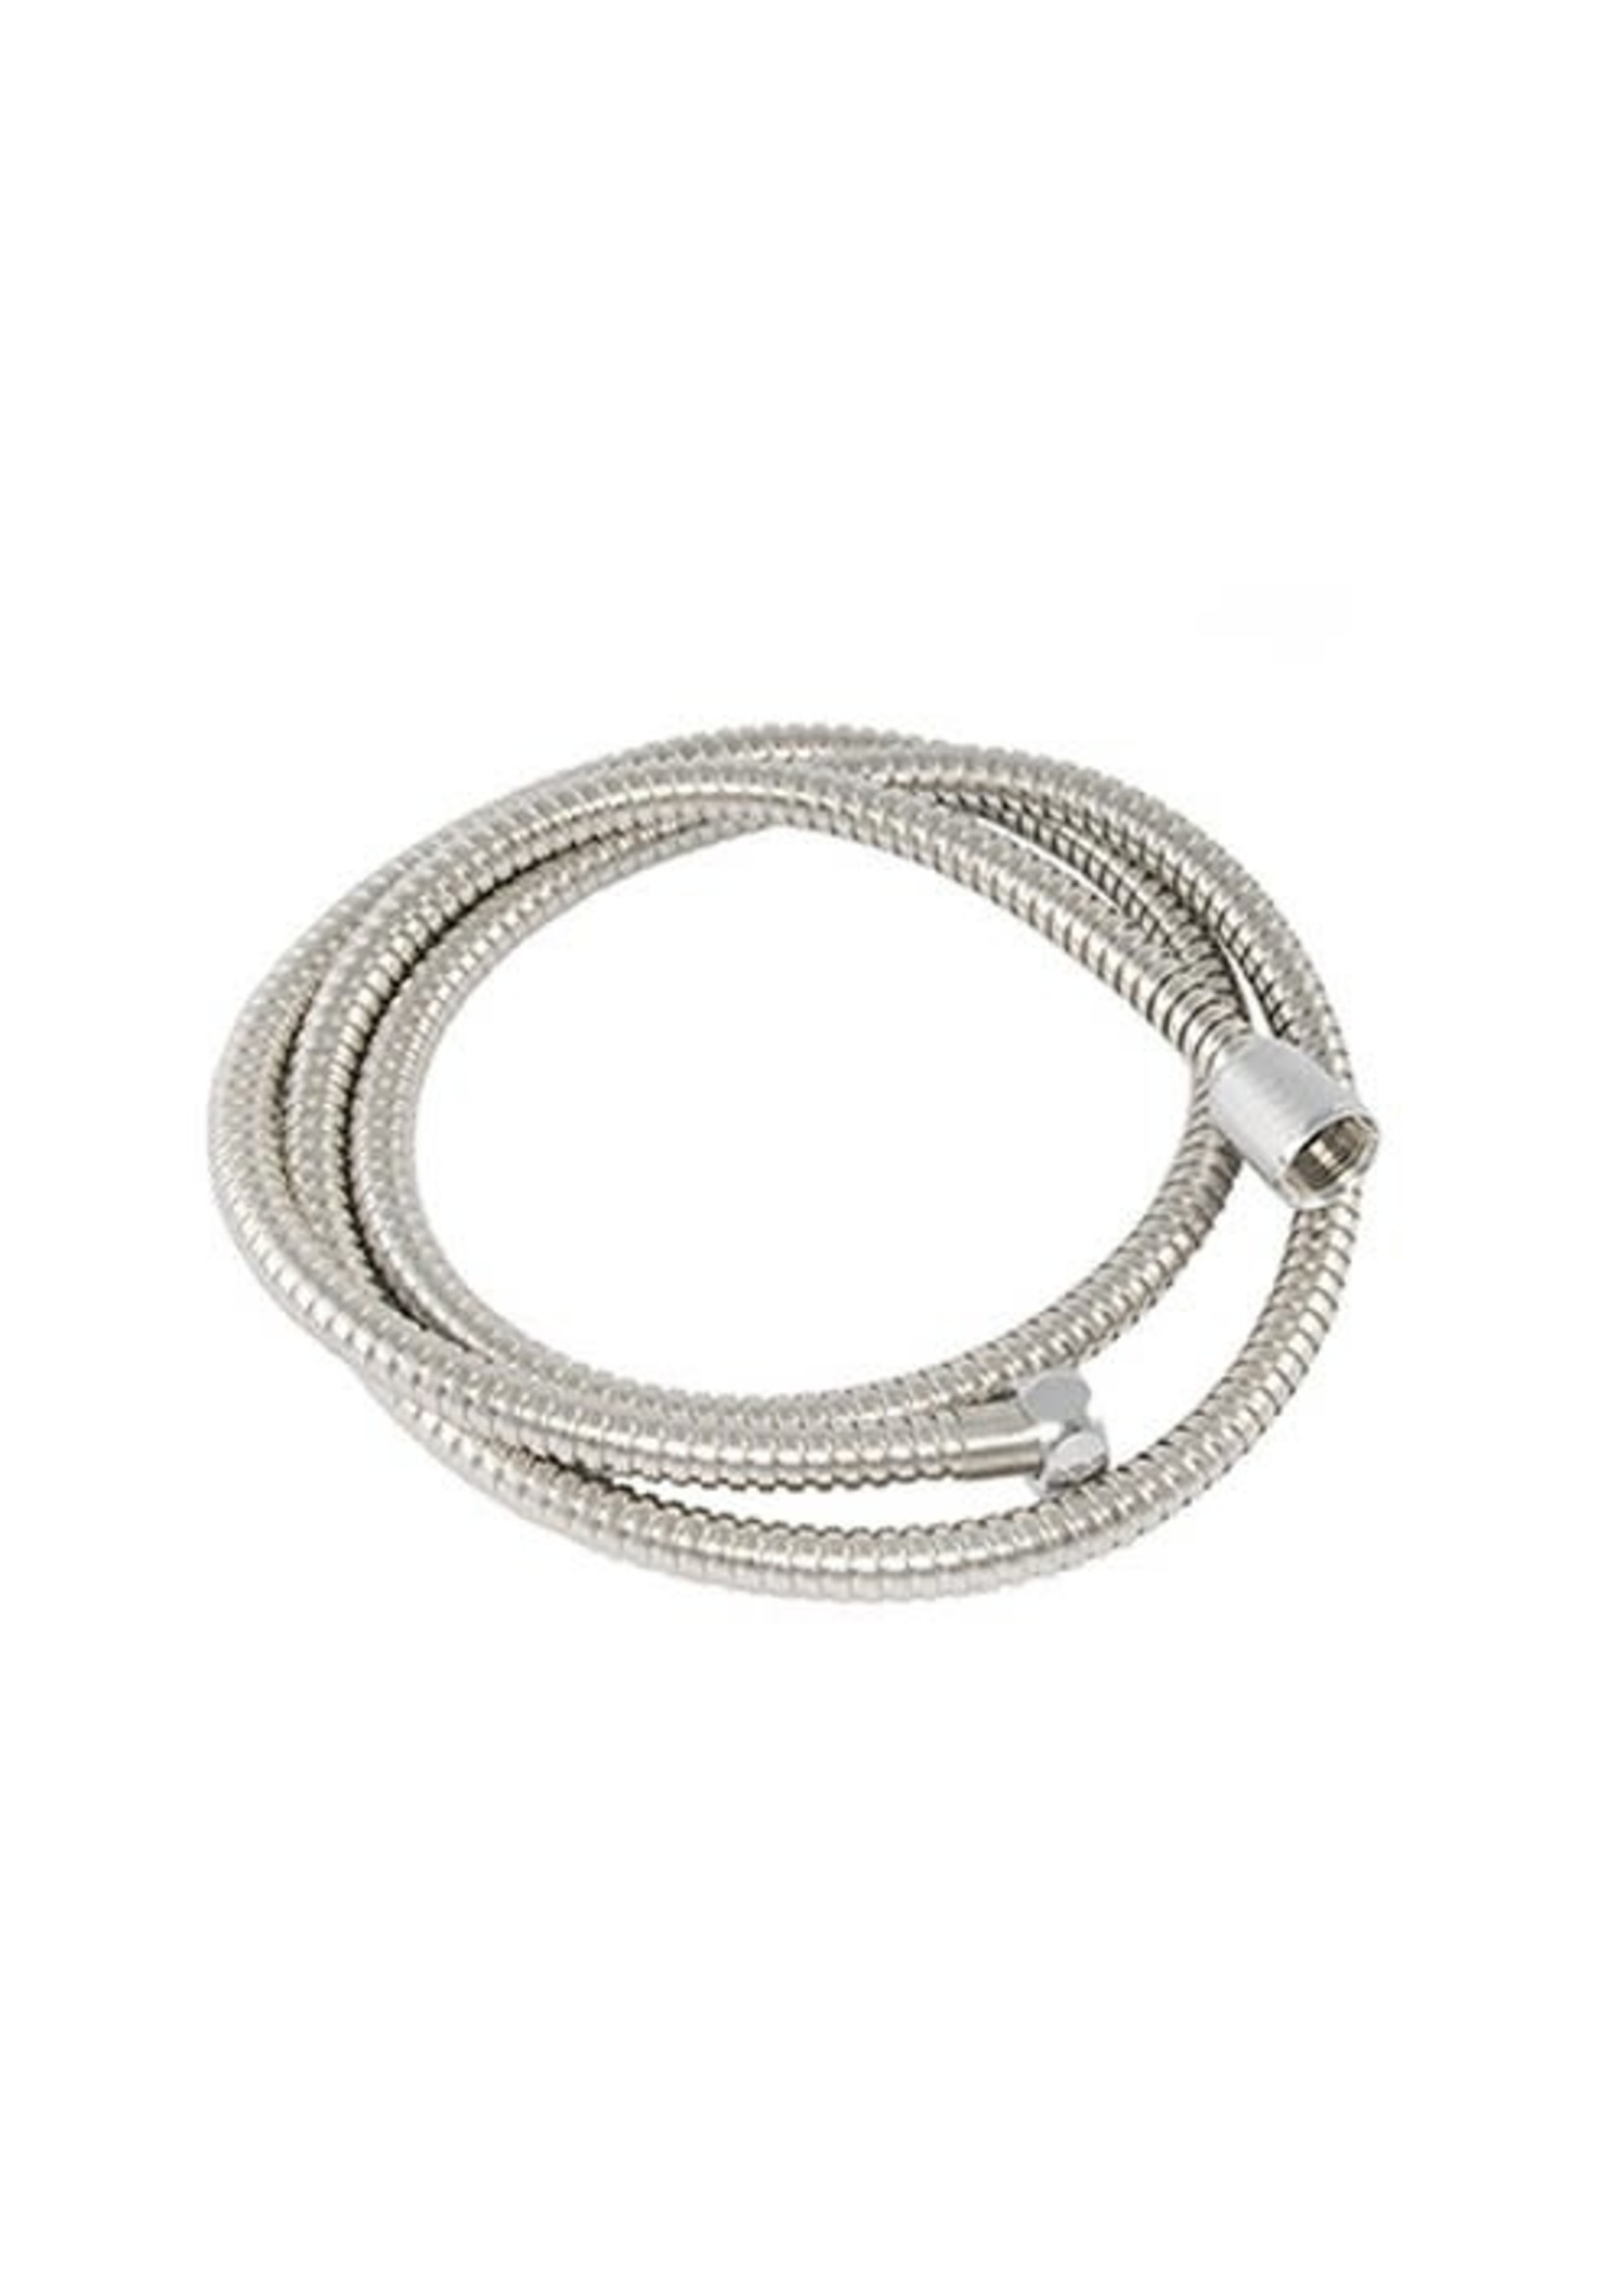 Rinservice Rinservice Replacement Hose